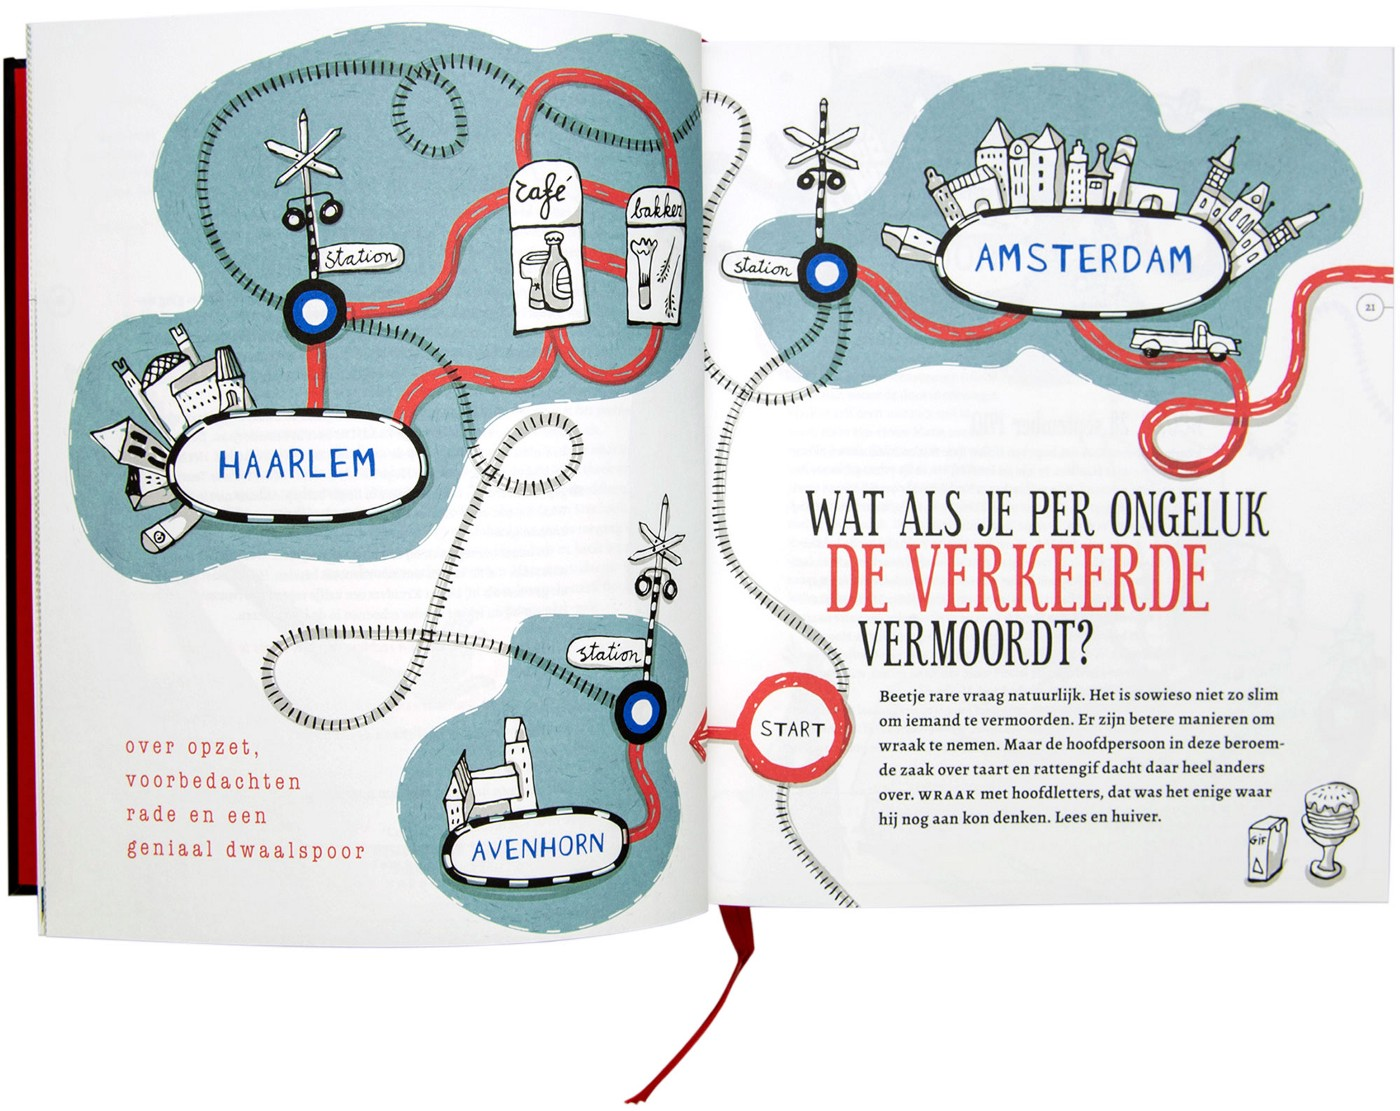 Inside spread photograph, shows an animated cartoonish illustrated spread using green and red colours of places in Holland